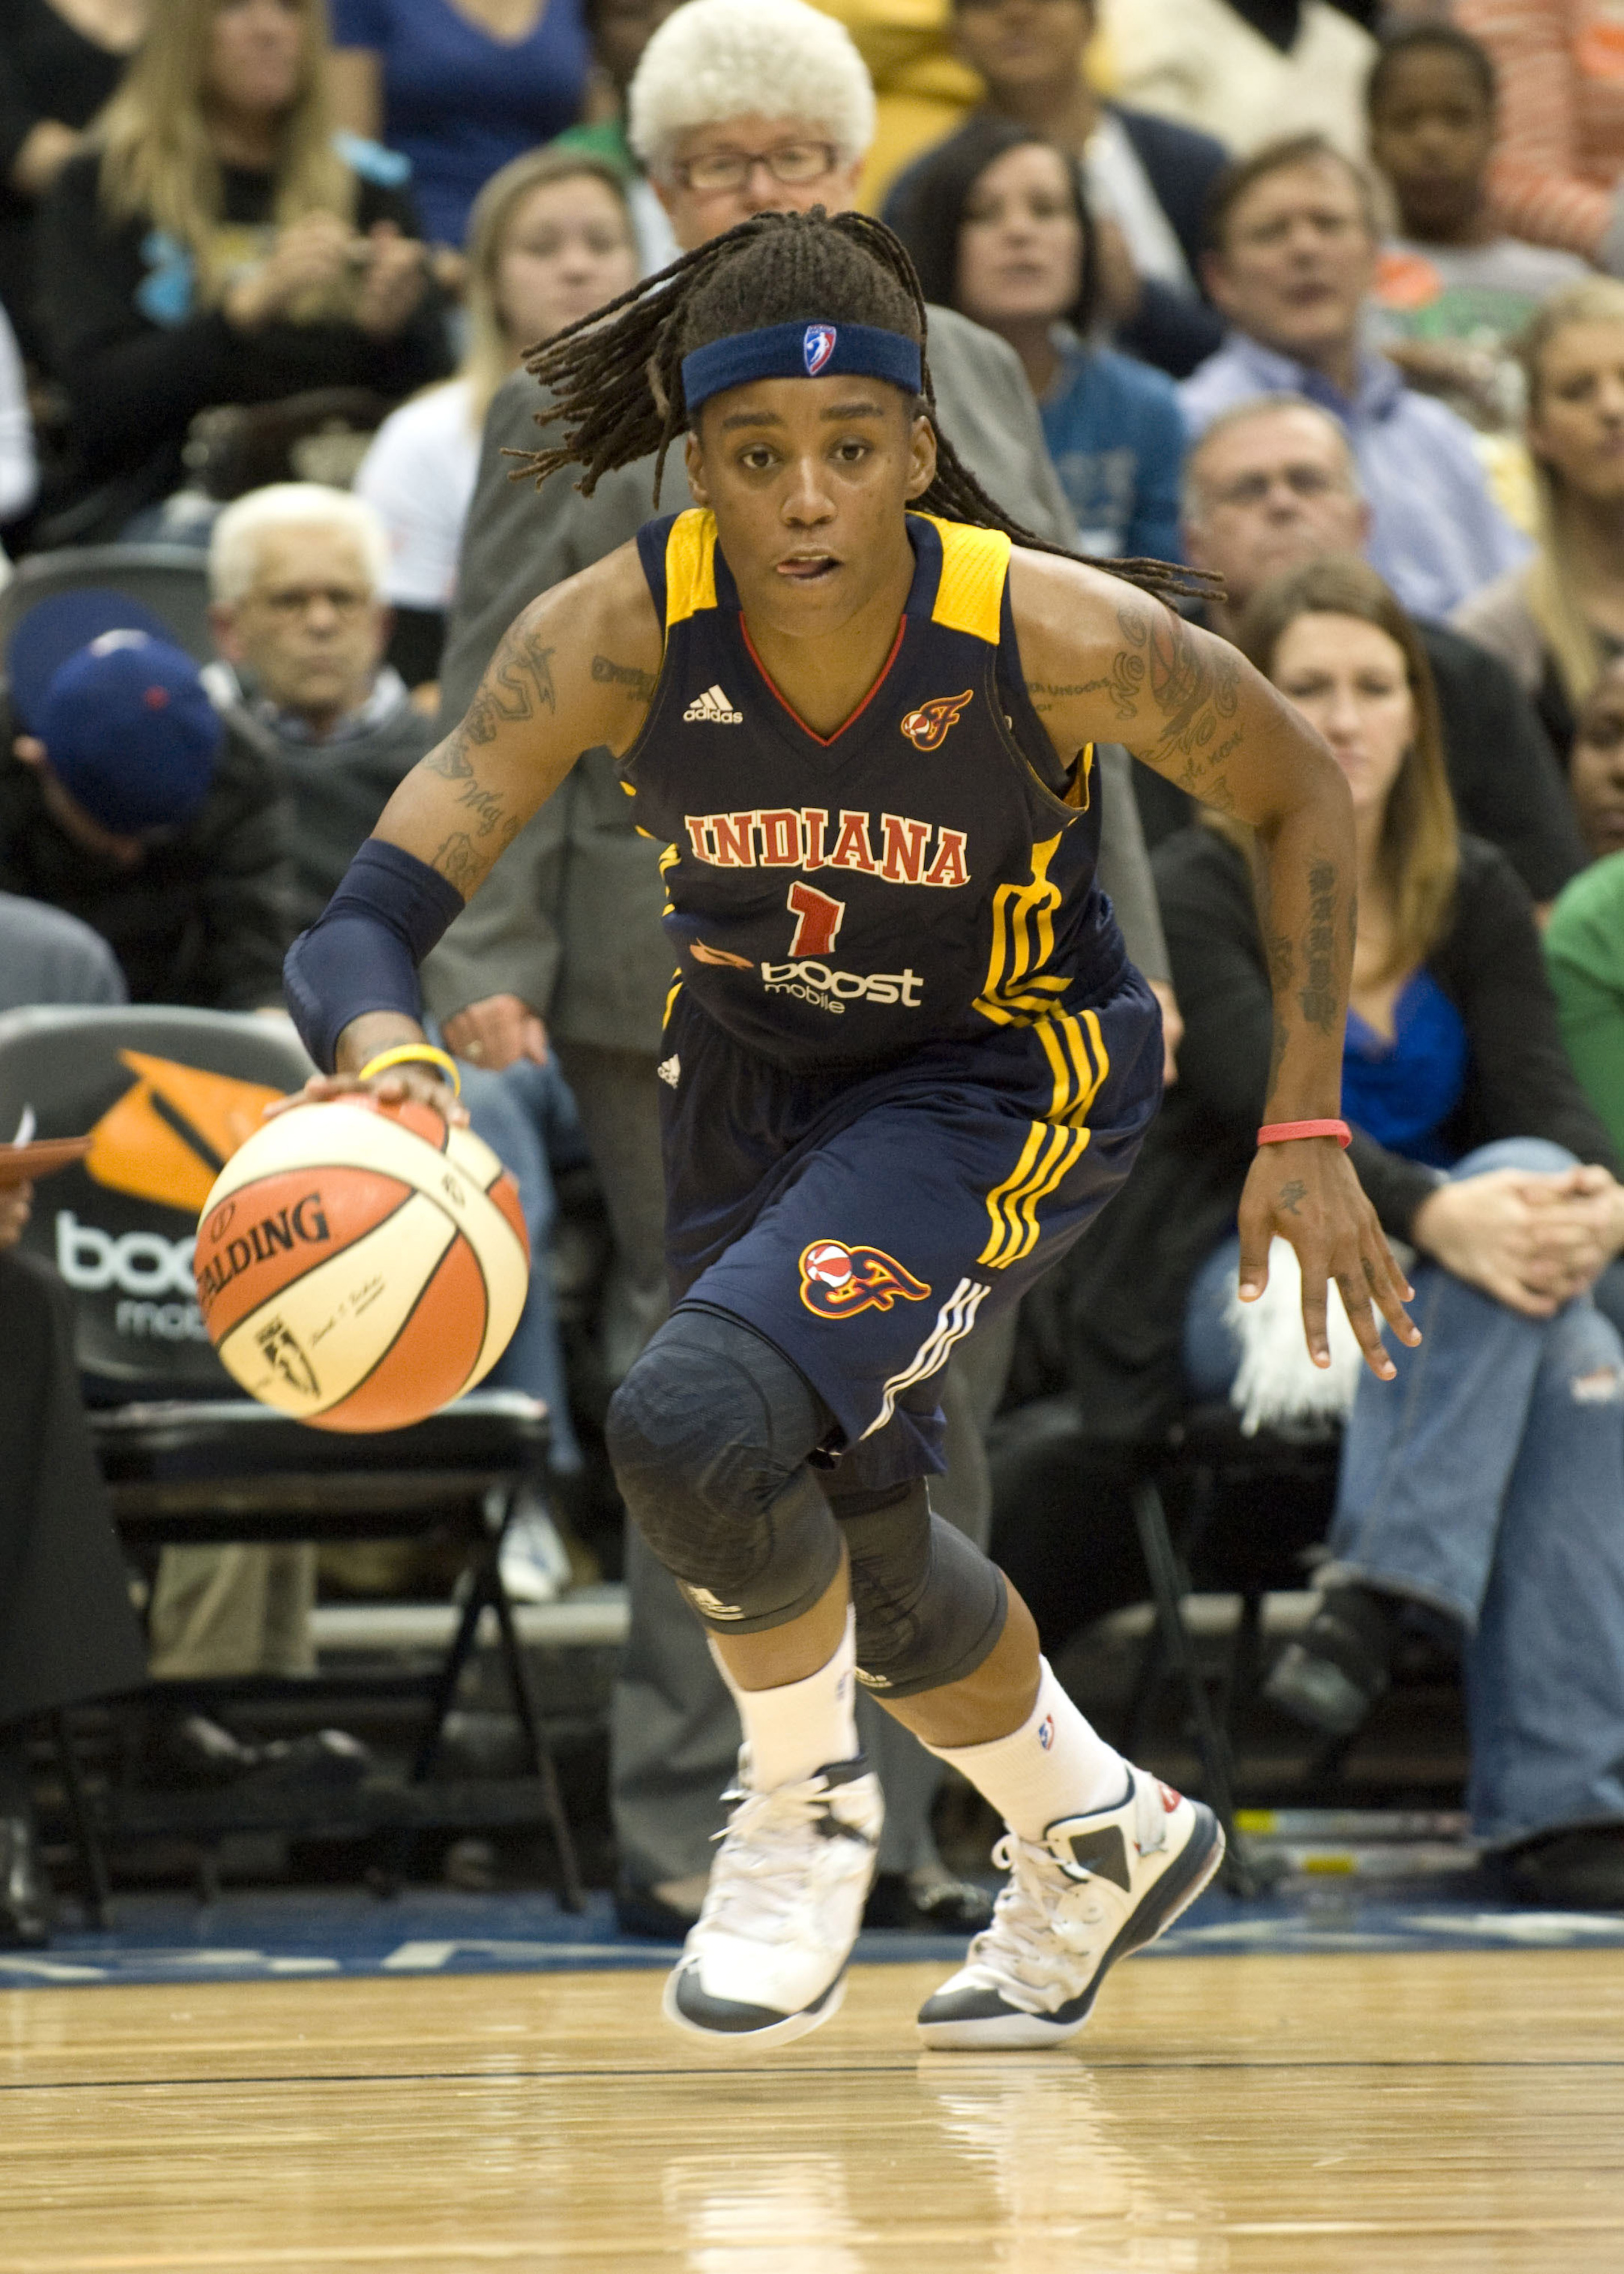 Should the Fever win the game tonight, the league will be jealous of Zellous.